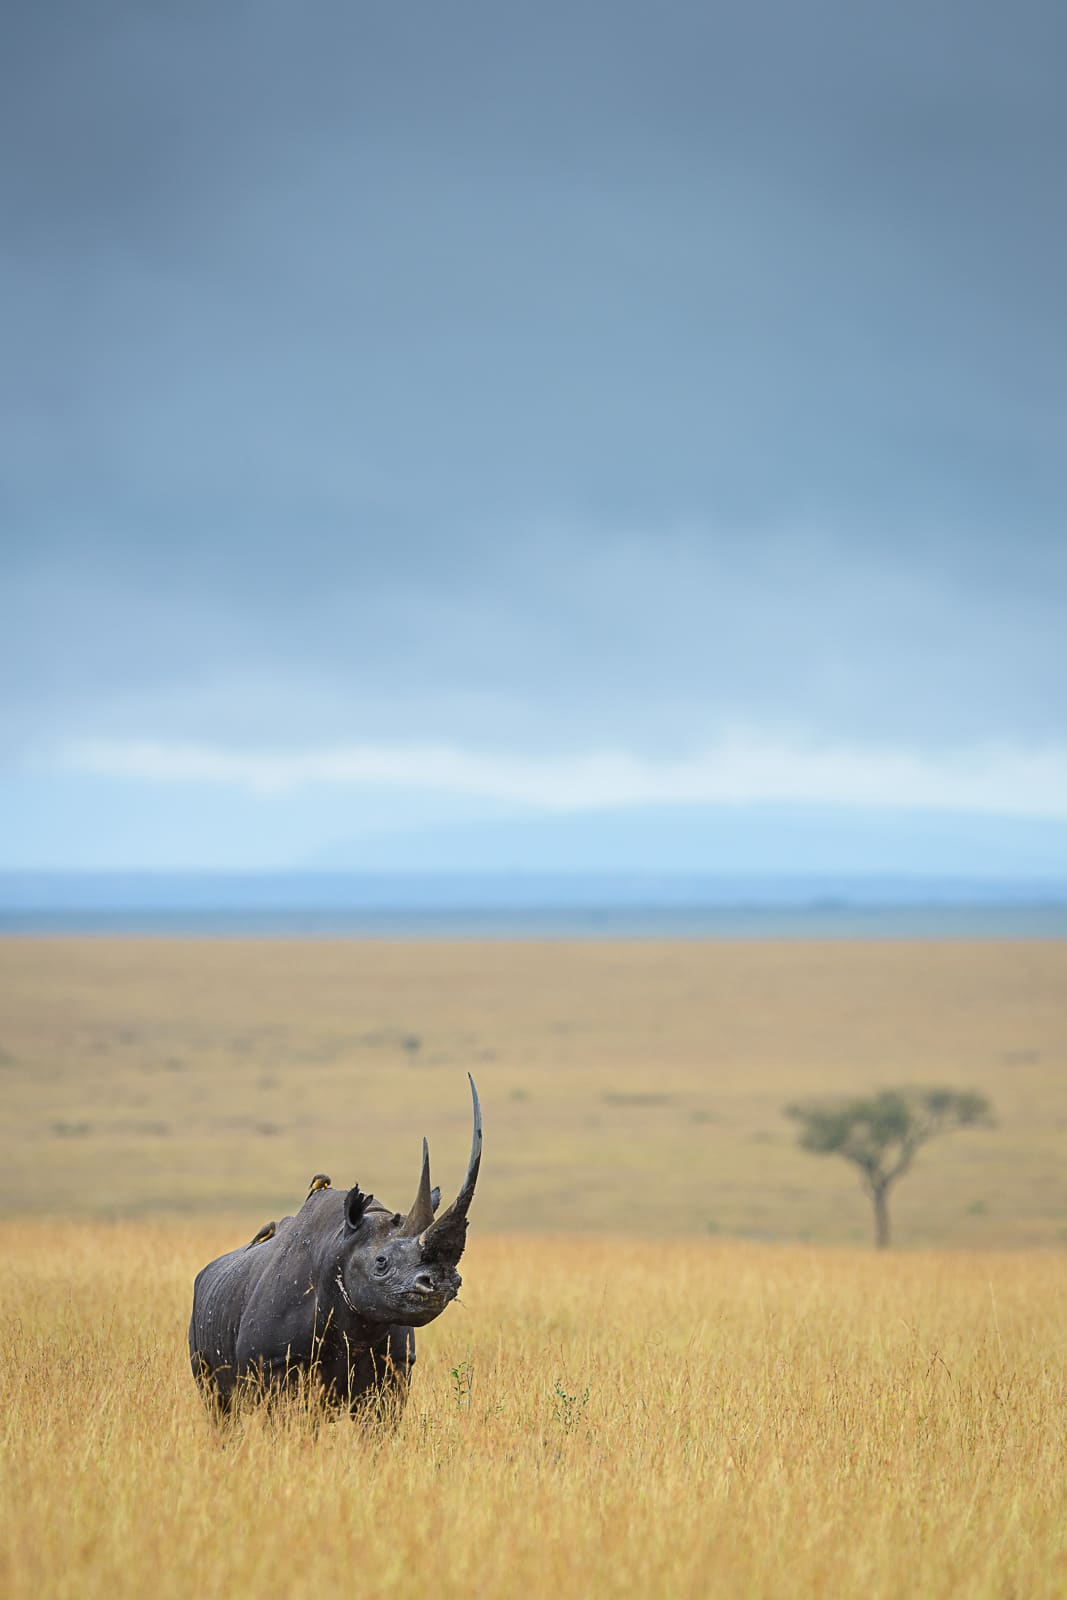 Rhino in Africa by David Lloyd